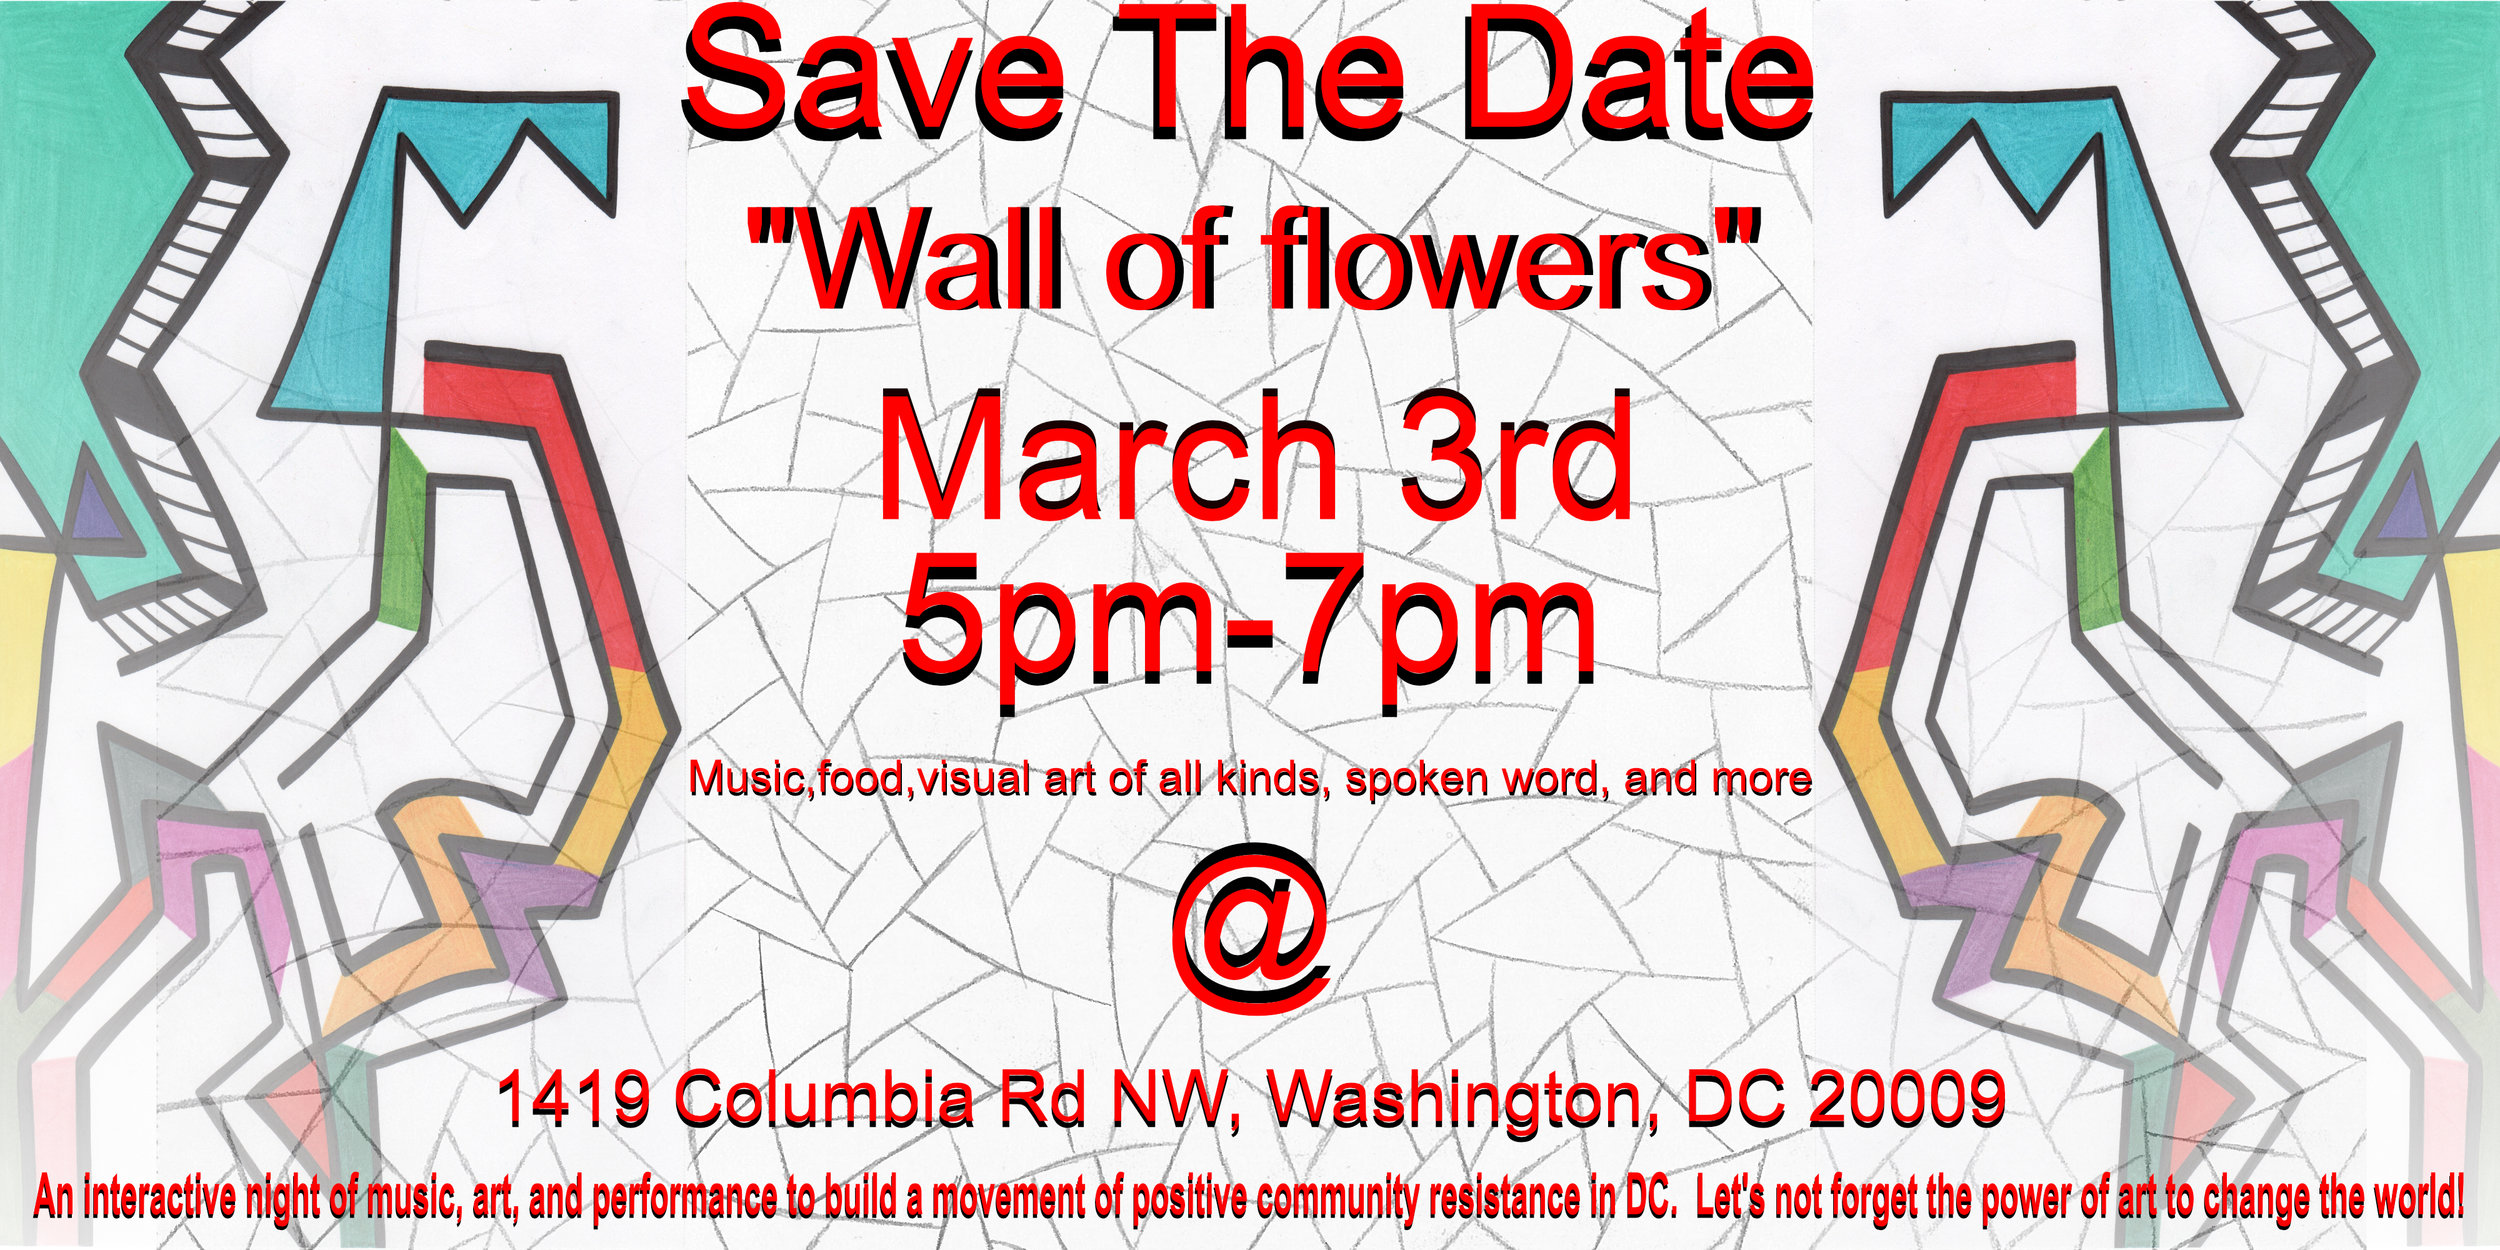 save the date wall of flowers event flyer  copy.jpg